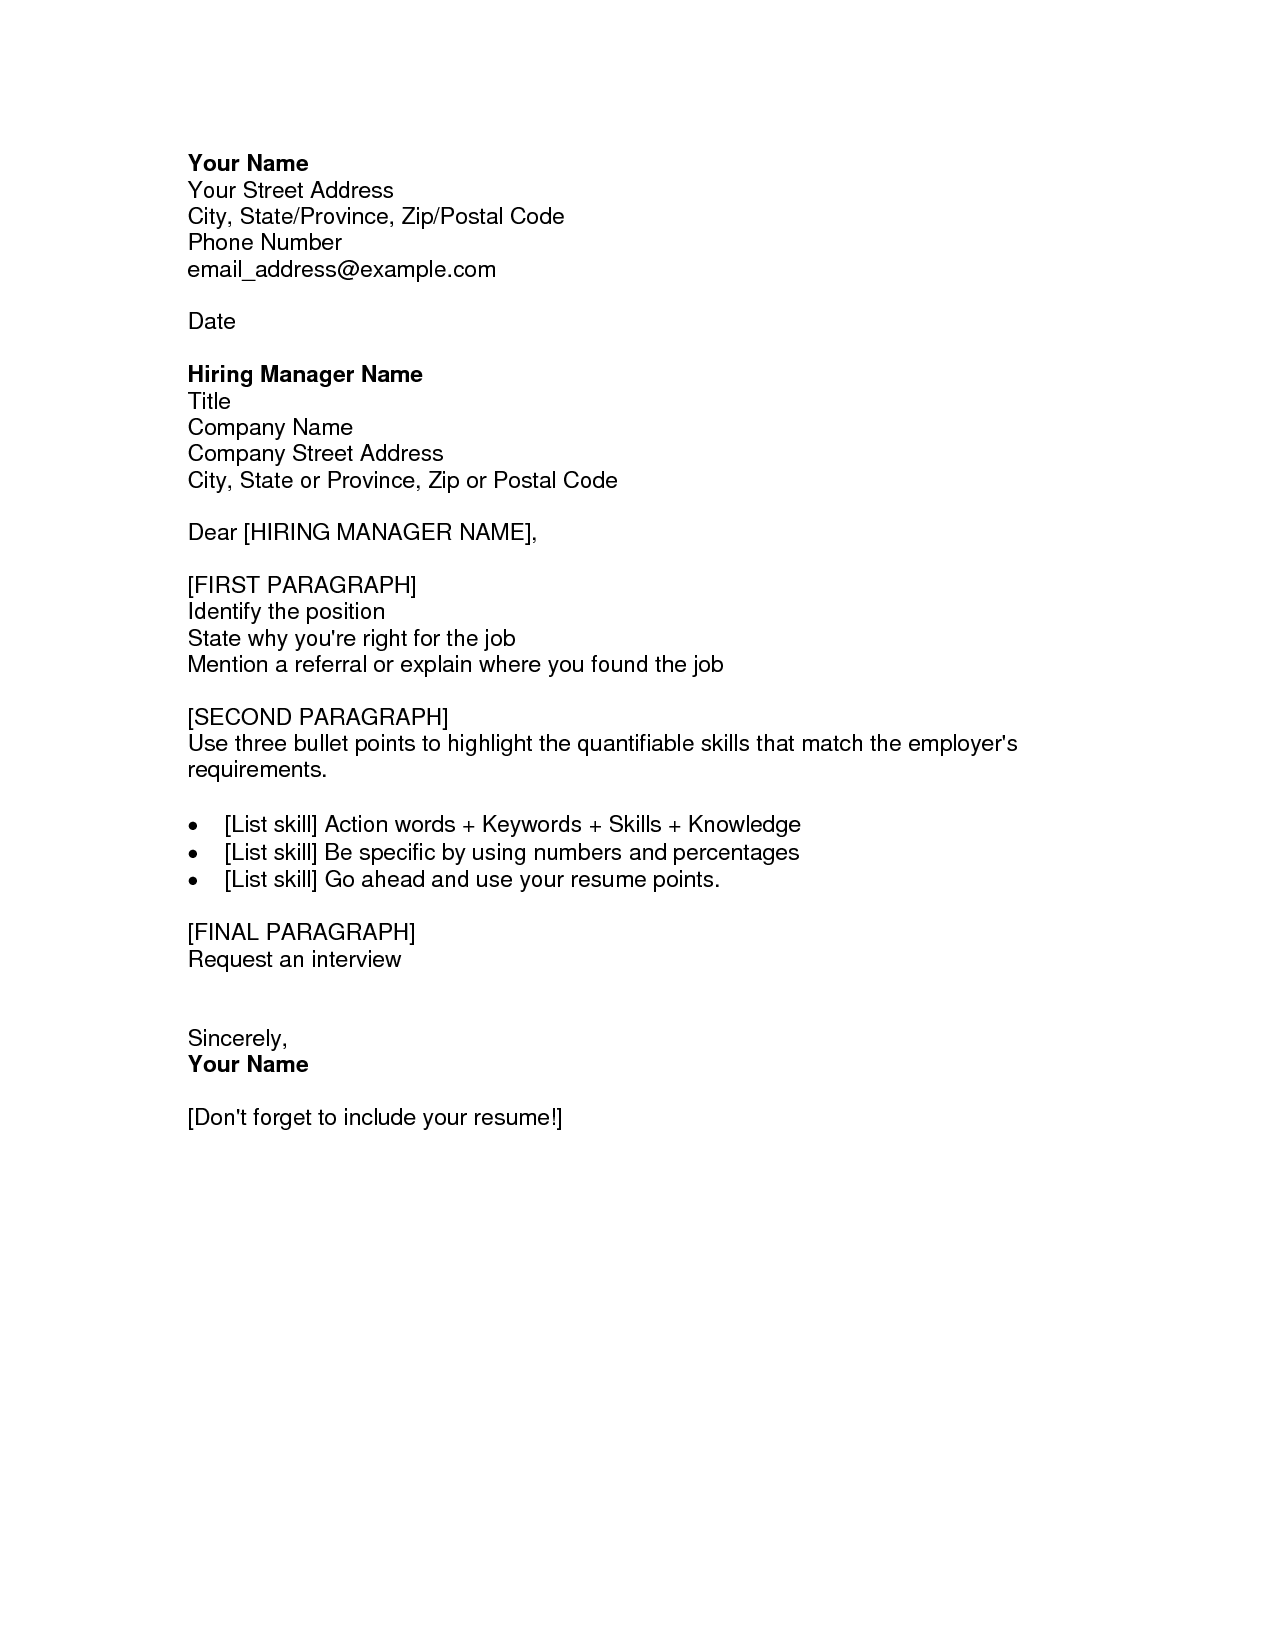 resume cover letter rich image and wallpaper - How To Create A Resume And Cover Letter